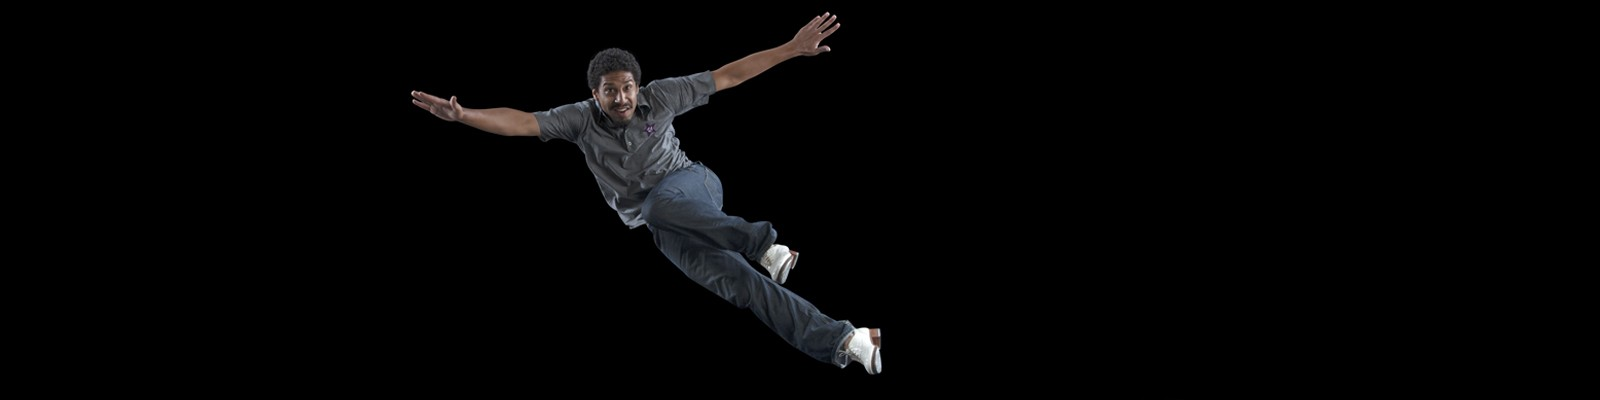 image - Jason Samuels Smith - Tap Dancer